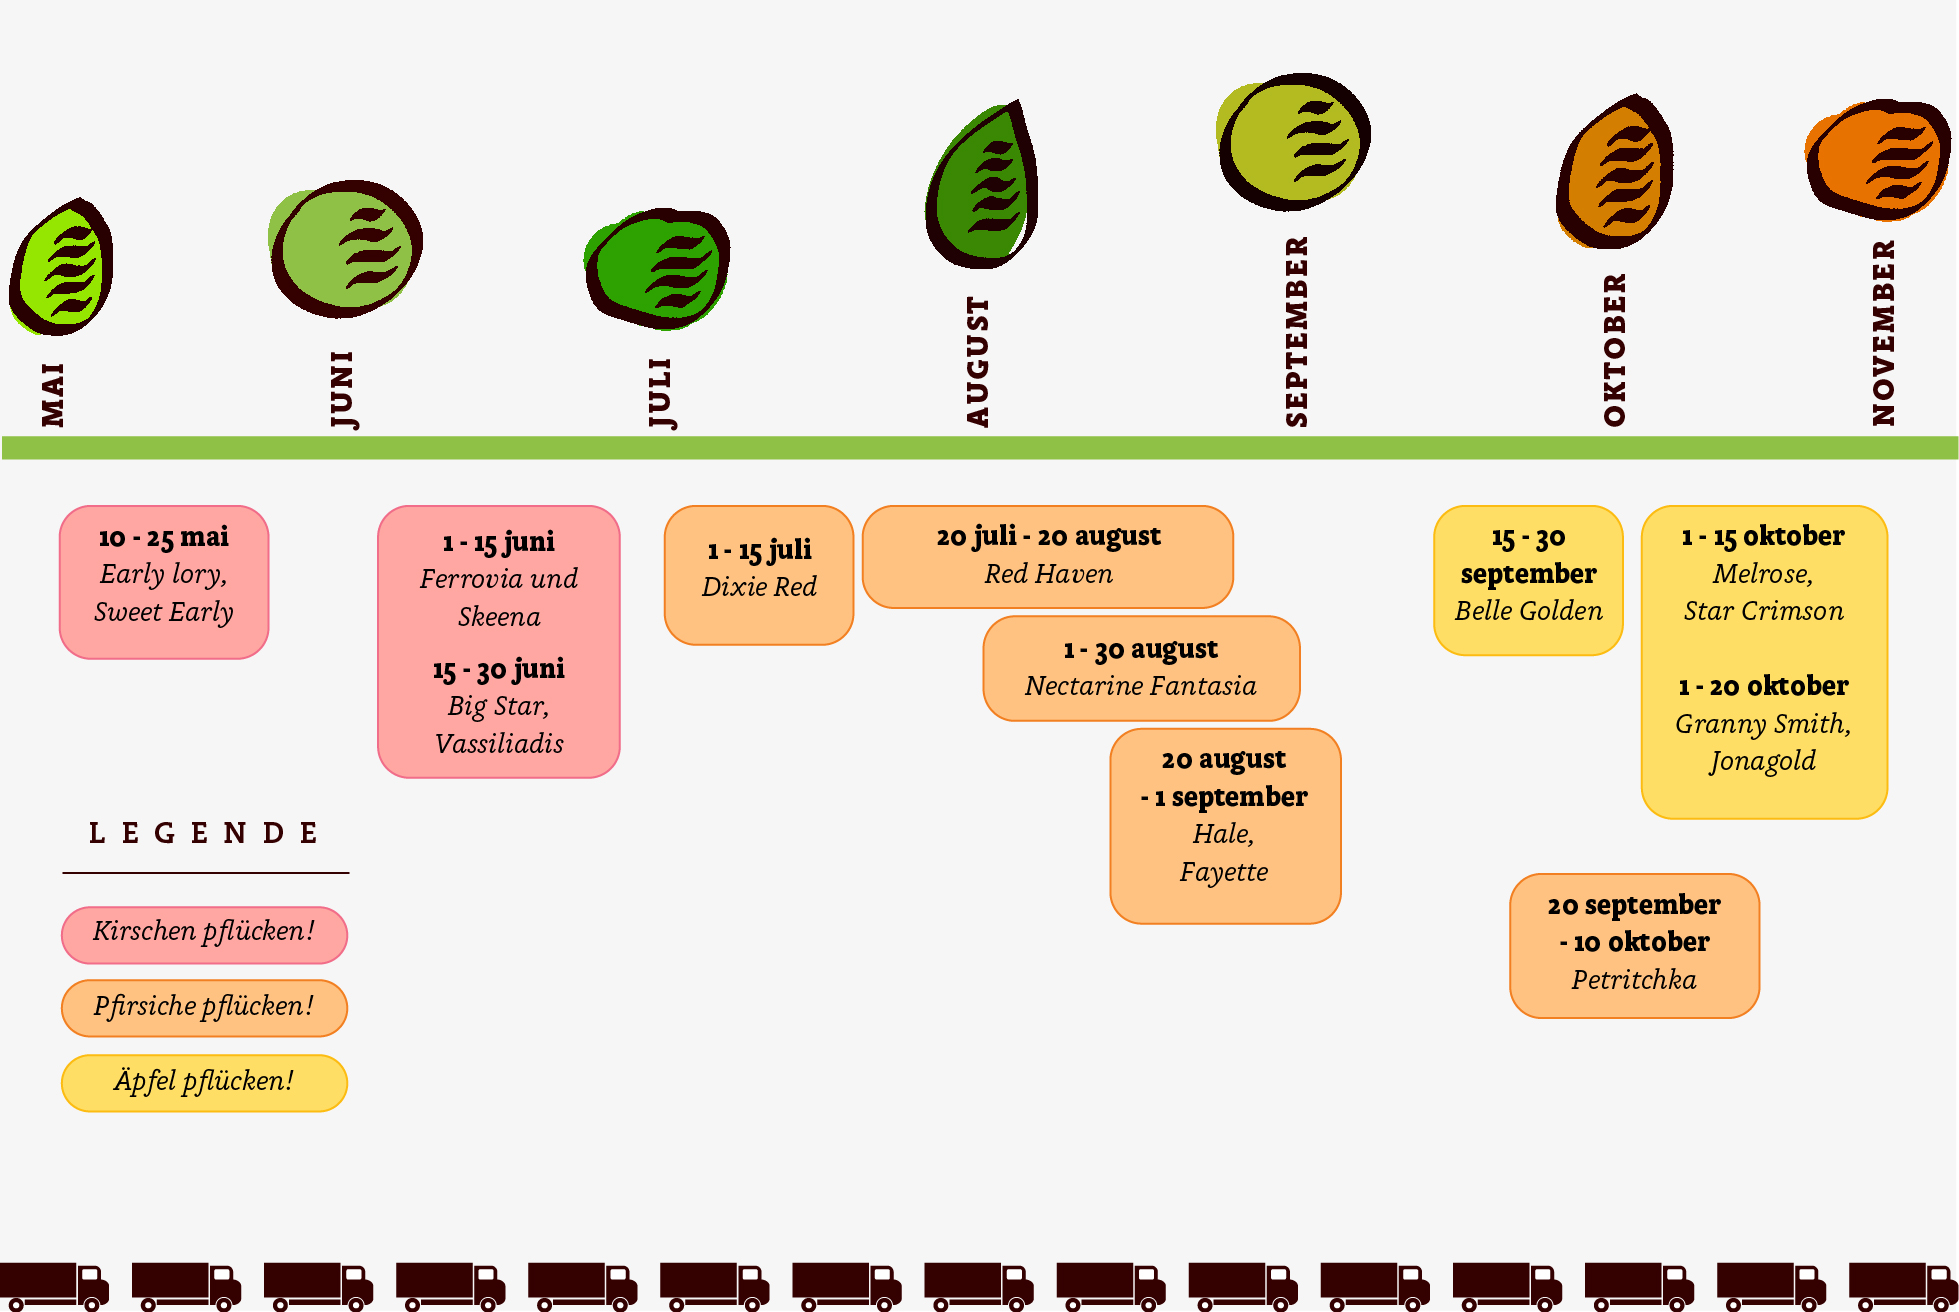 Fruits_time line3_DE